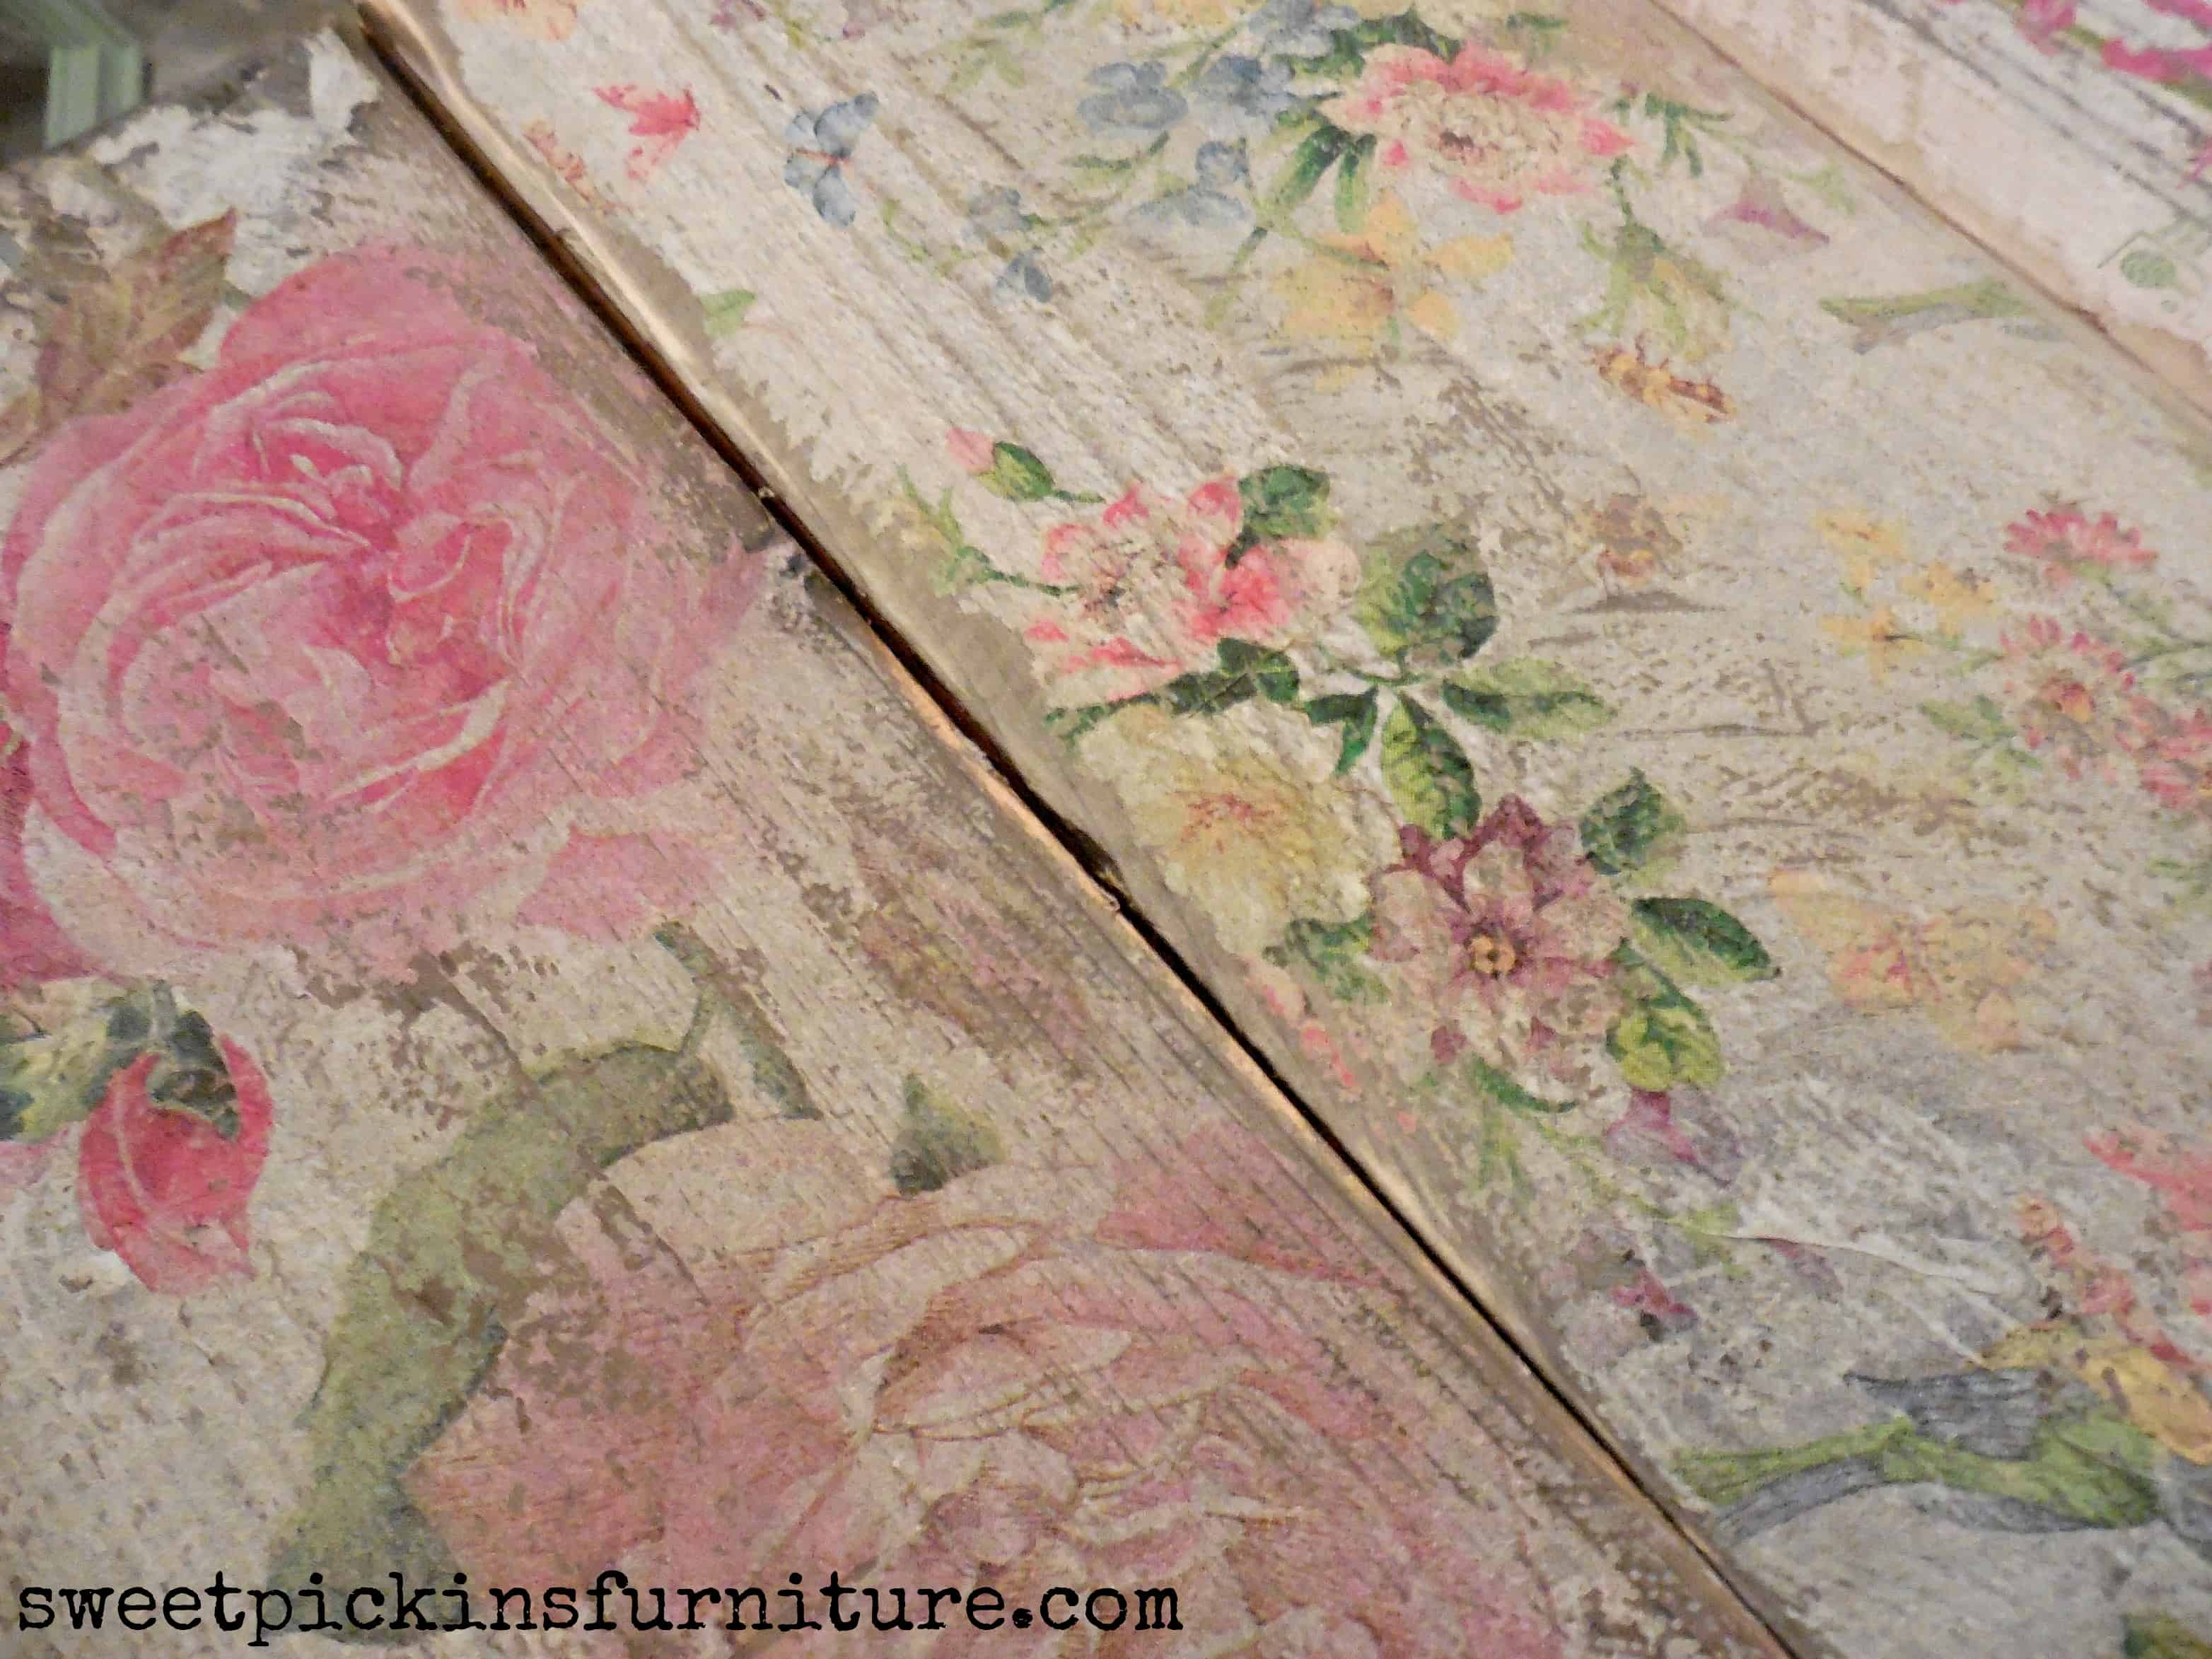 Napkin flowers furntiure decoupage